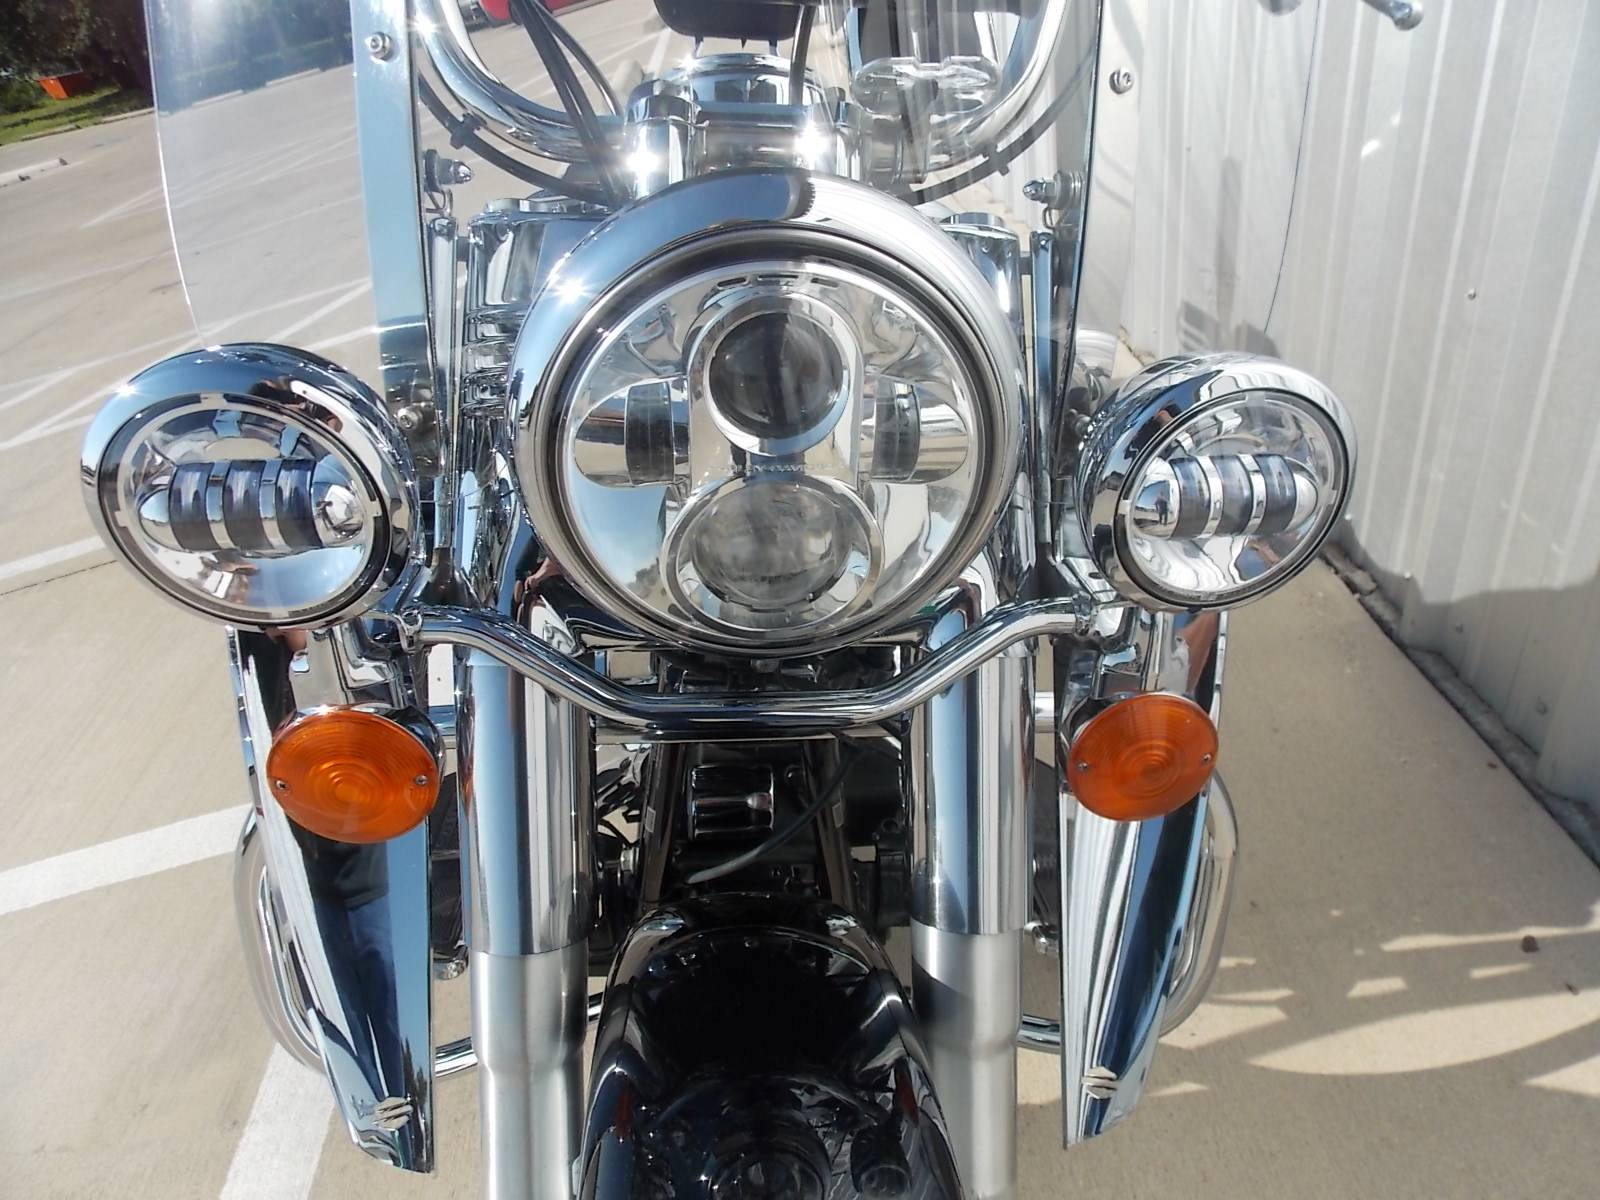 2013 Harley-Davidson Heritage Softail® Classic in Springtown, Texas - Photo 11